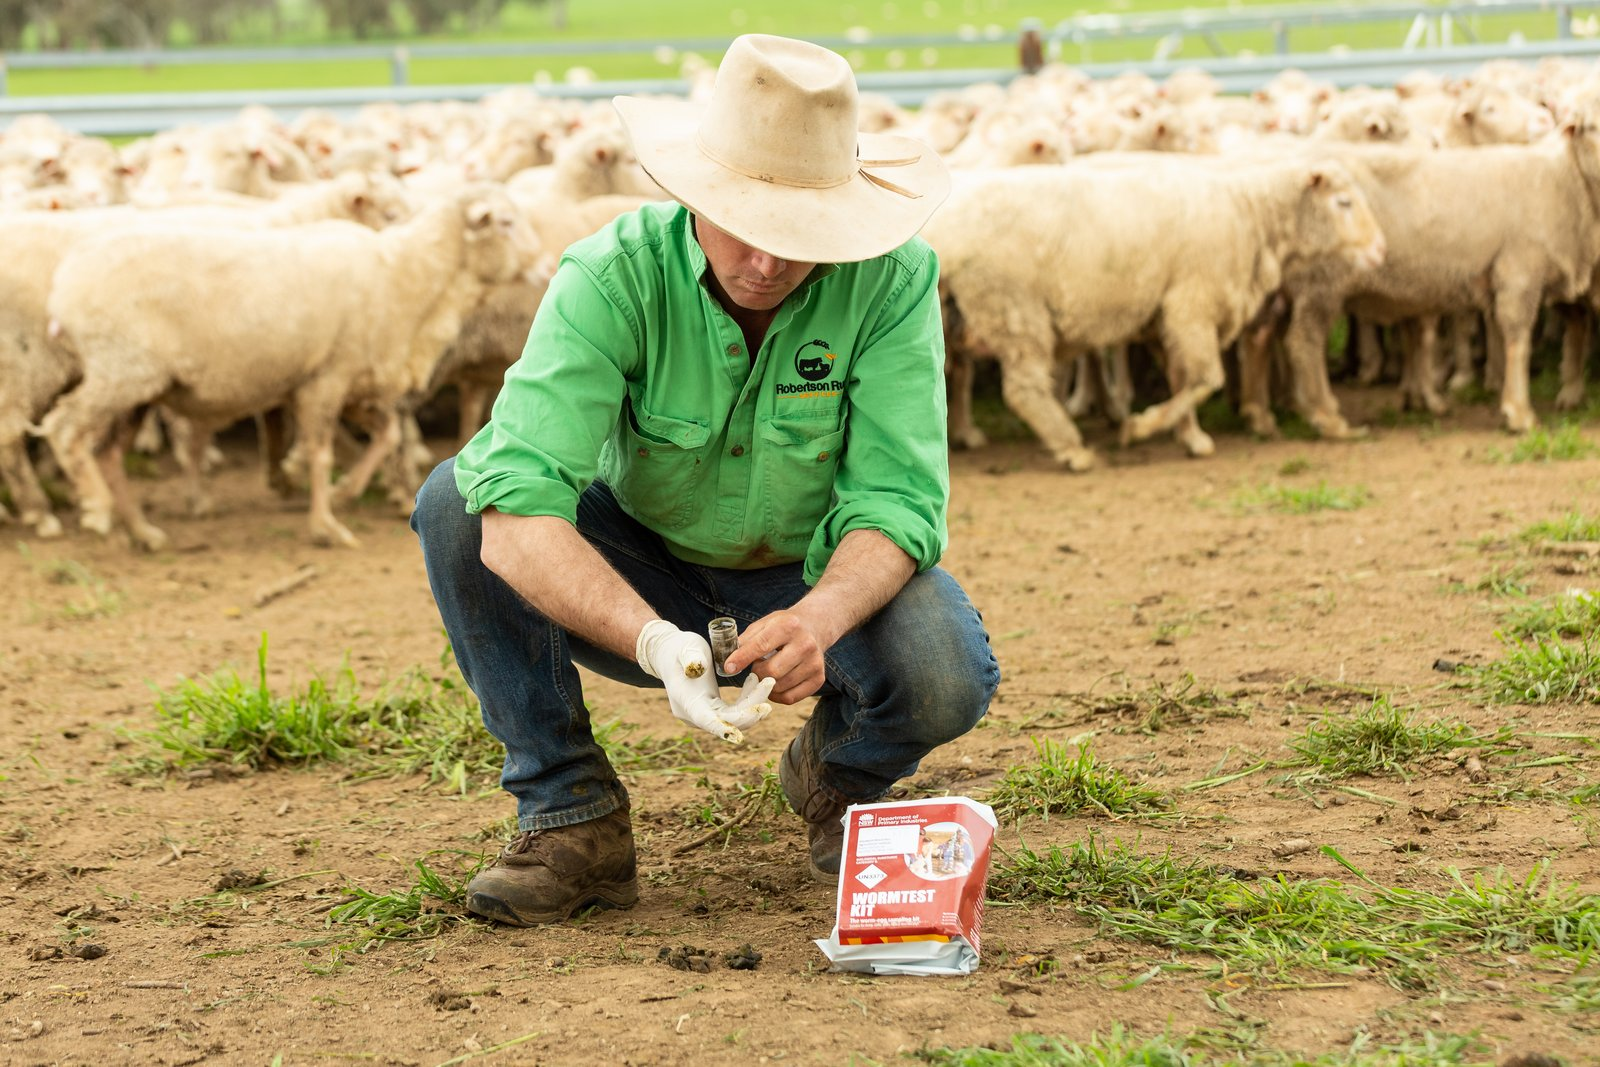 Farmer collecting sheep droppings for a worm egg count